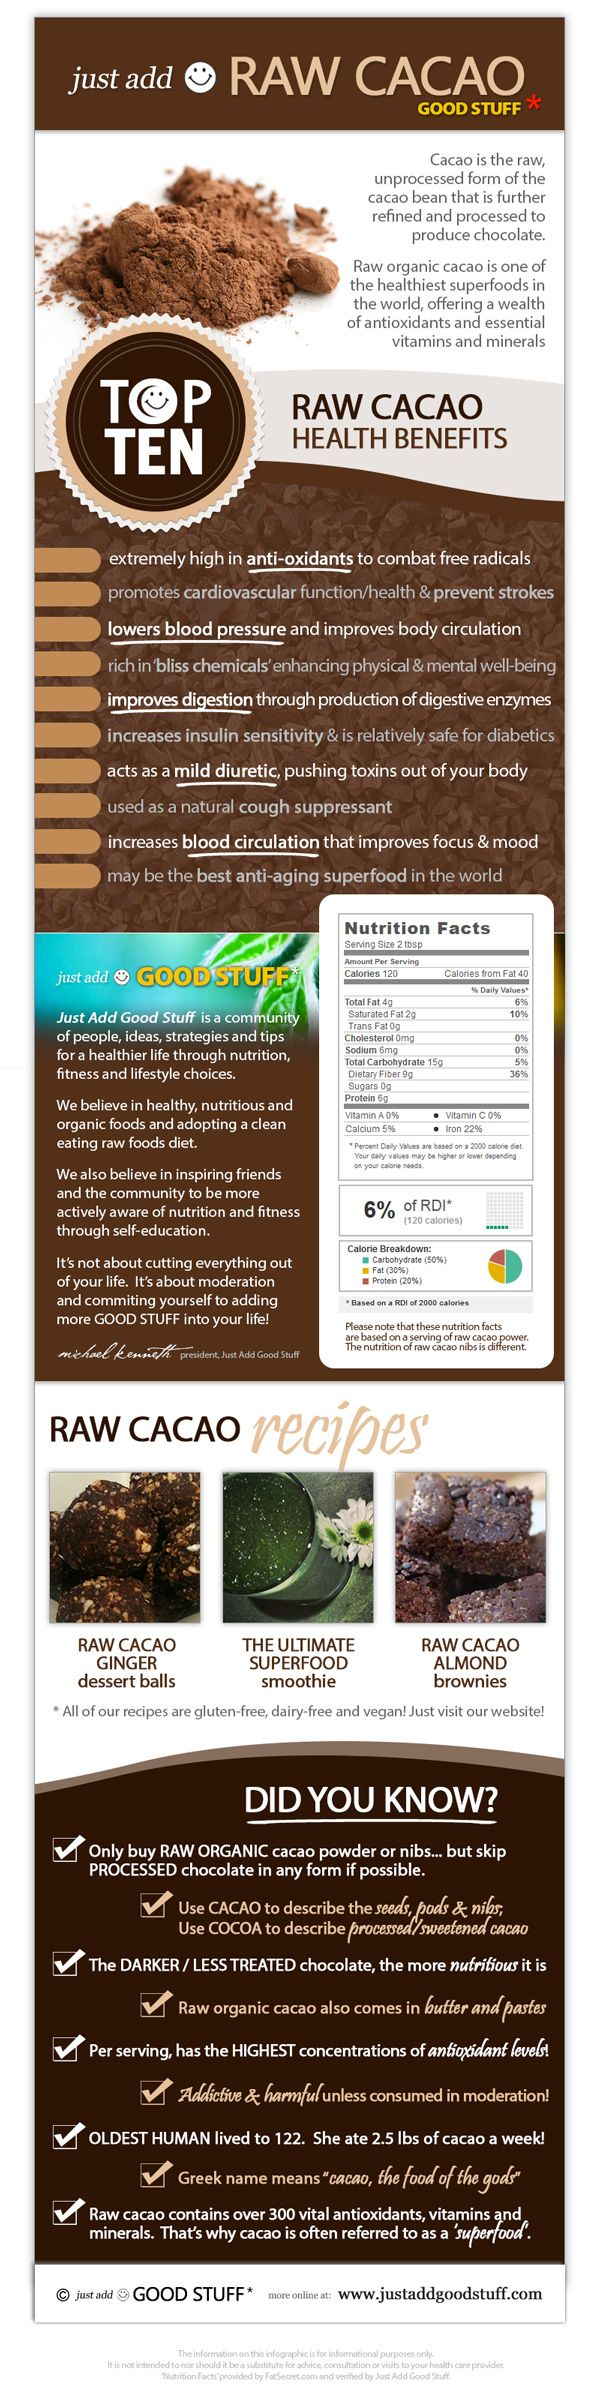 Just Add Good Stuff Cacao Infographic detailing the health benefits in a visual way